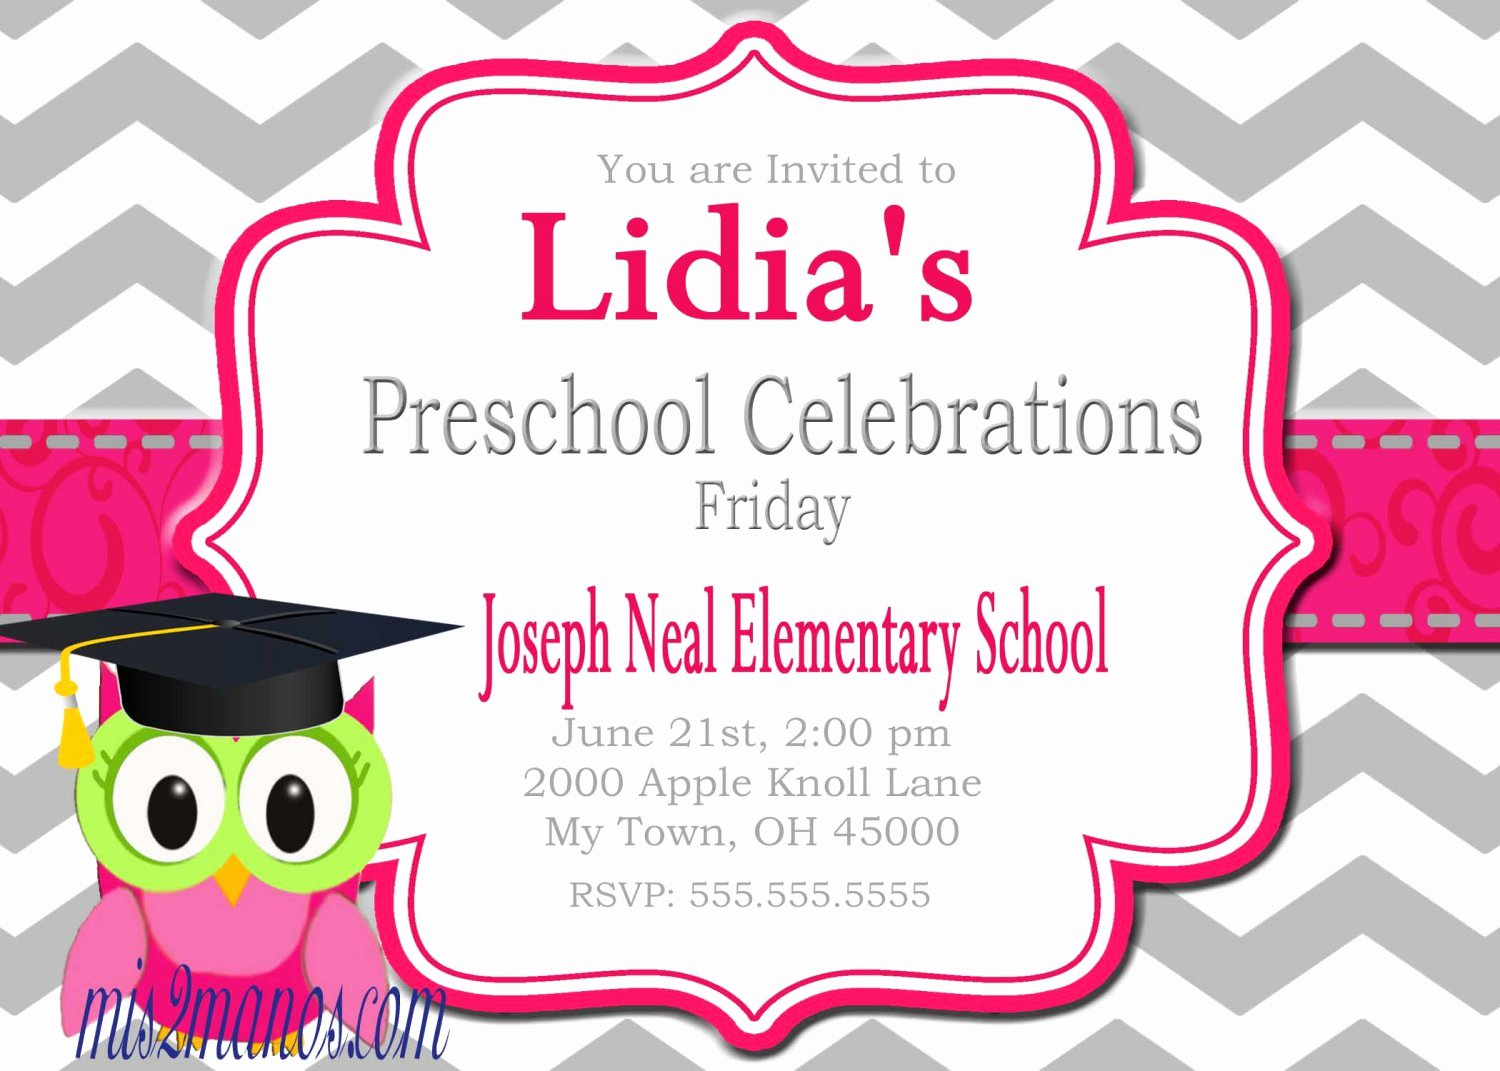 Free Printable Graduation Invitations Awesome Preschool Graduation Invitations Printable Invites